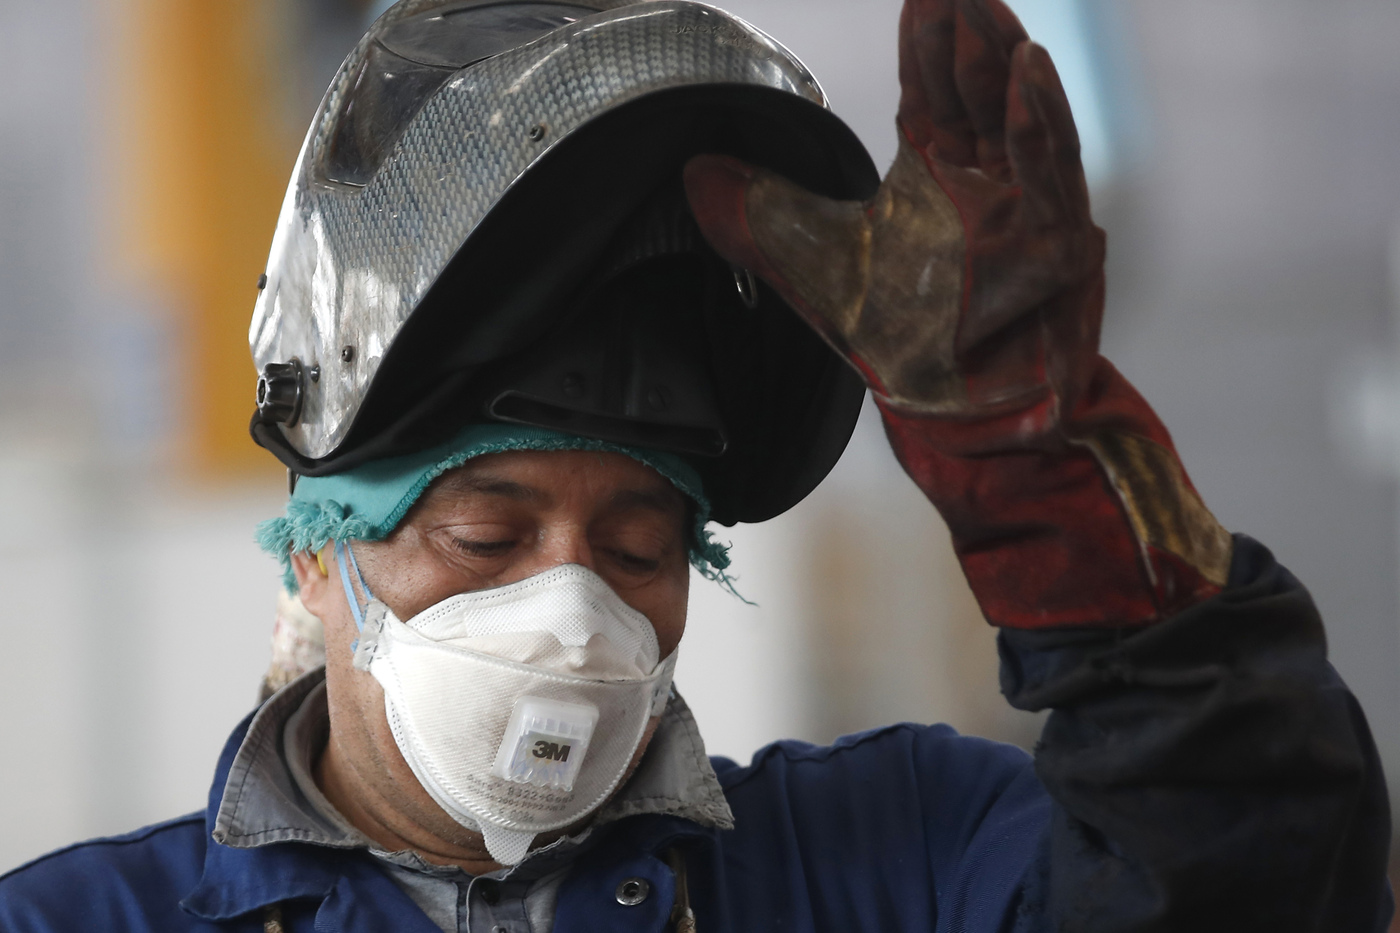 A man wears a safety mask under the soldering mask as he works at MAP, a factory operating in design, manufacture and installation of steel structures for civil and industrial use, in Corsico, near Milan, Italy, Wednesday, May 6, 2020. Italy began stirring again after the coronavirus shutdown, with 4.4 million Italians able to return to work and restrictions on movement eased in the first European country to lock down in a bid to stem COVID-19 infections. (AP Photo/Antonio Calanni)